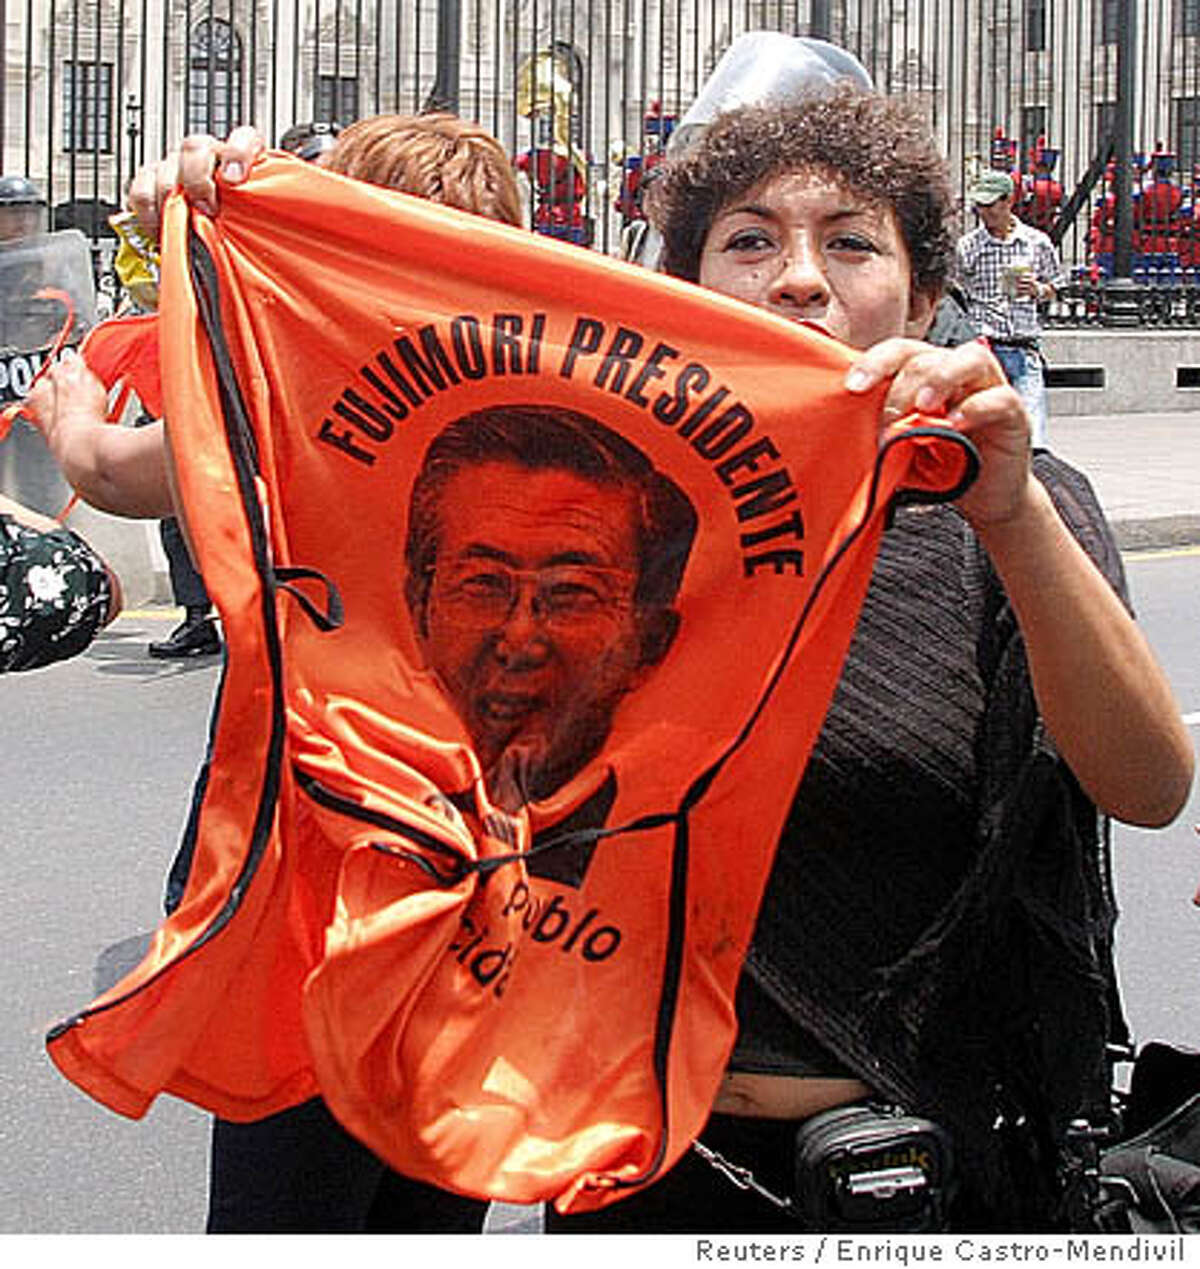 Supporter of former President Alberto Fujimori holding a T-Shirt with his picture, protests in front of the Government Palace in Lima, January 11, 2006. Peru's election board on Tuesday rejected a bid by Fujimori to run for president in April on the grounds that he is barred from holding public office until 2011. REUTERS/Enrique Castro-Mendivil 0